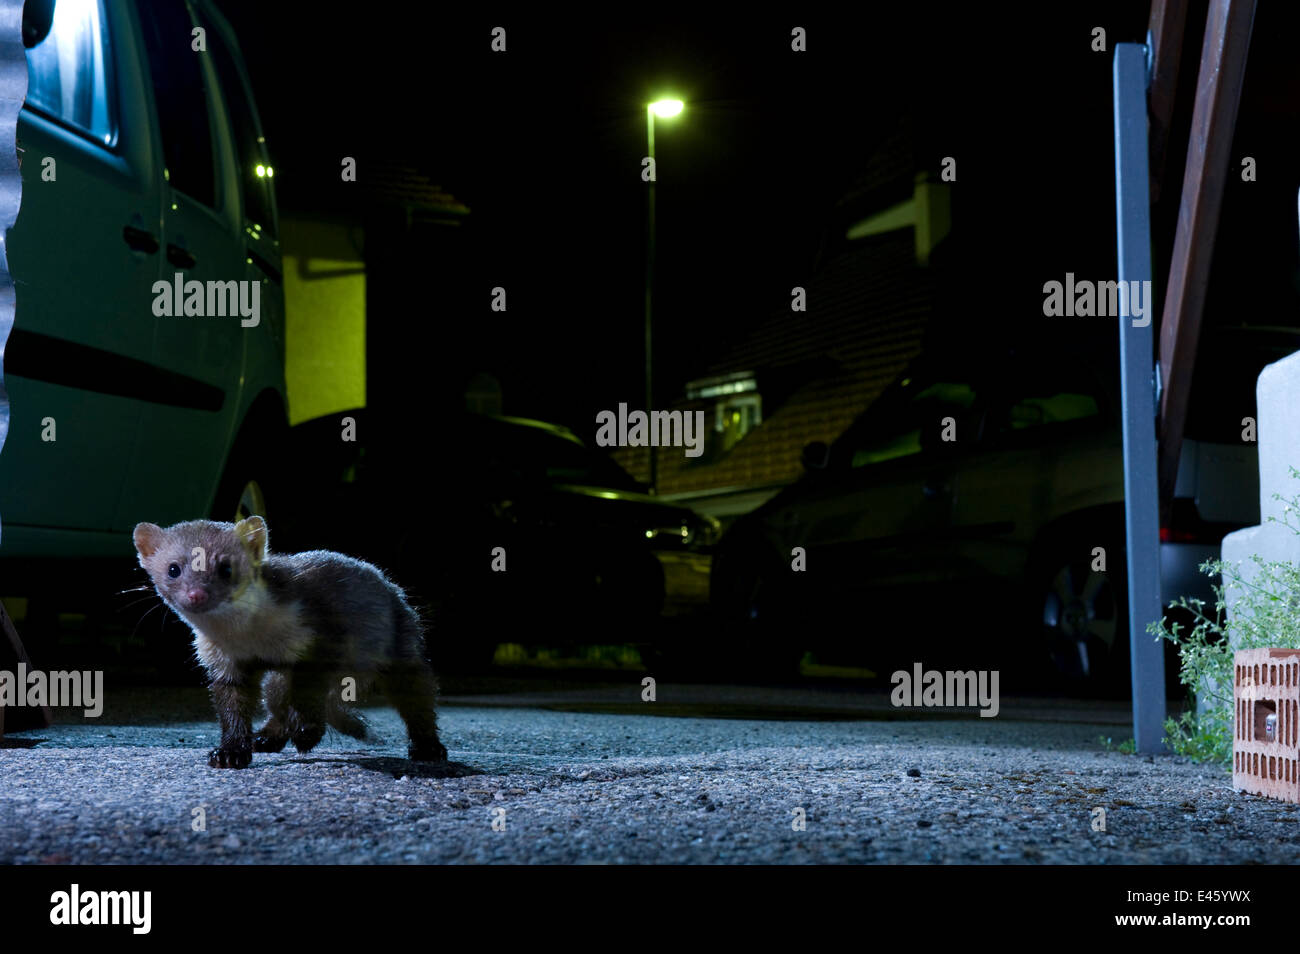 Beech marten (Martes foina) at night in city, Switzerland, taken using infra red beam - Stock Image